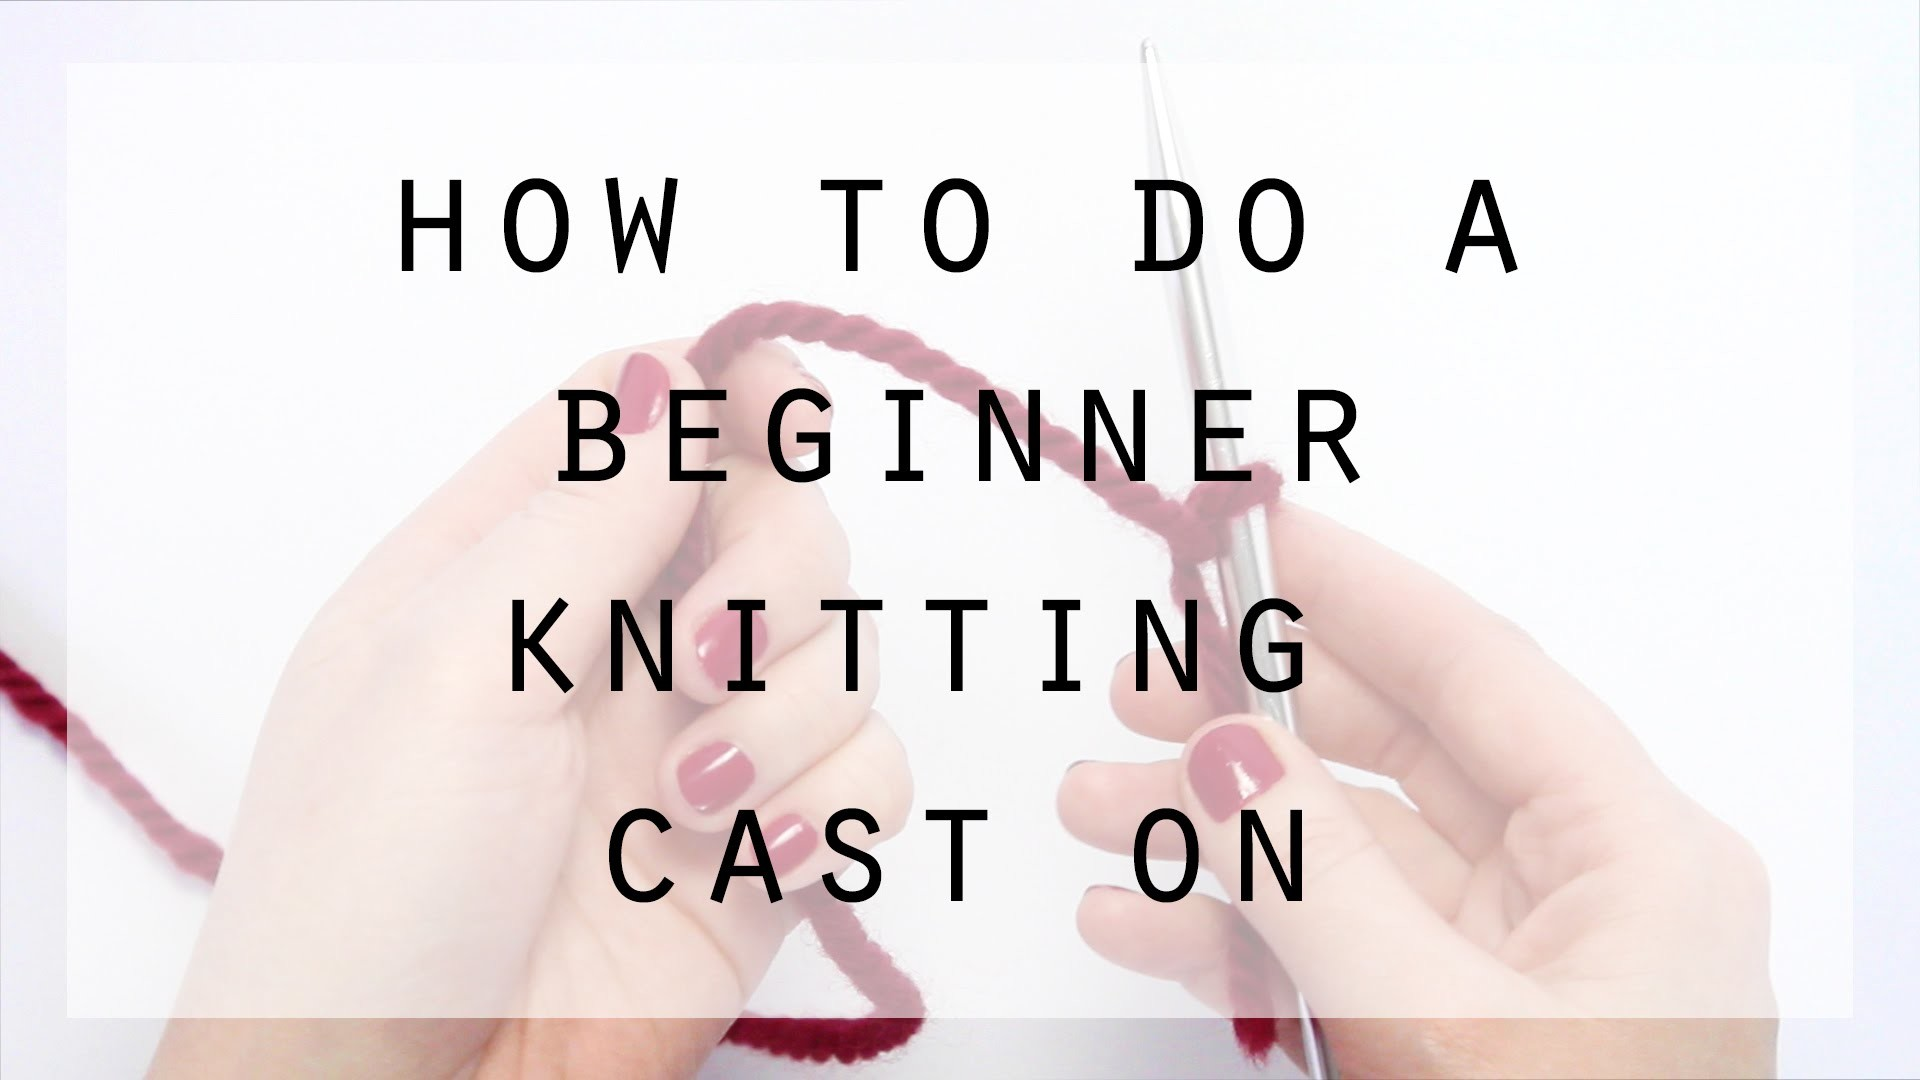 How to do a beginner knitting cast on | Hands Occupied